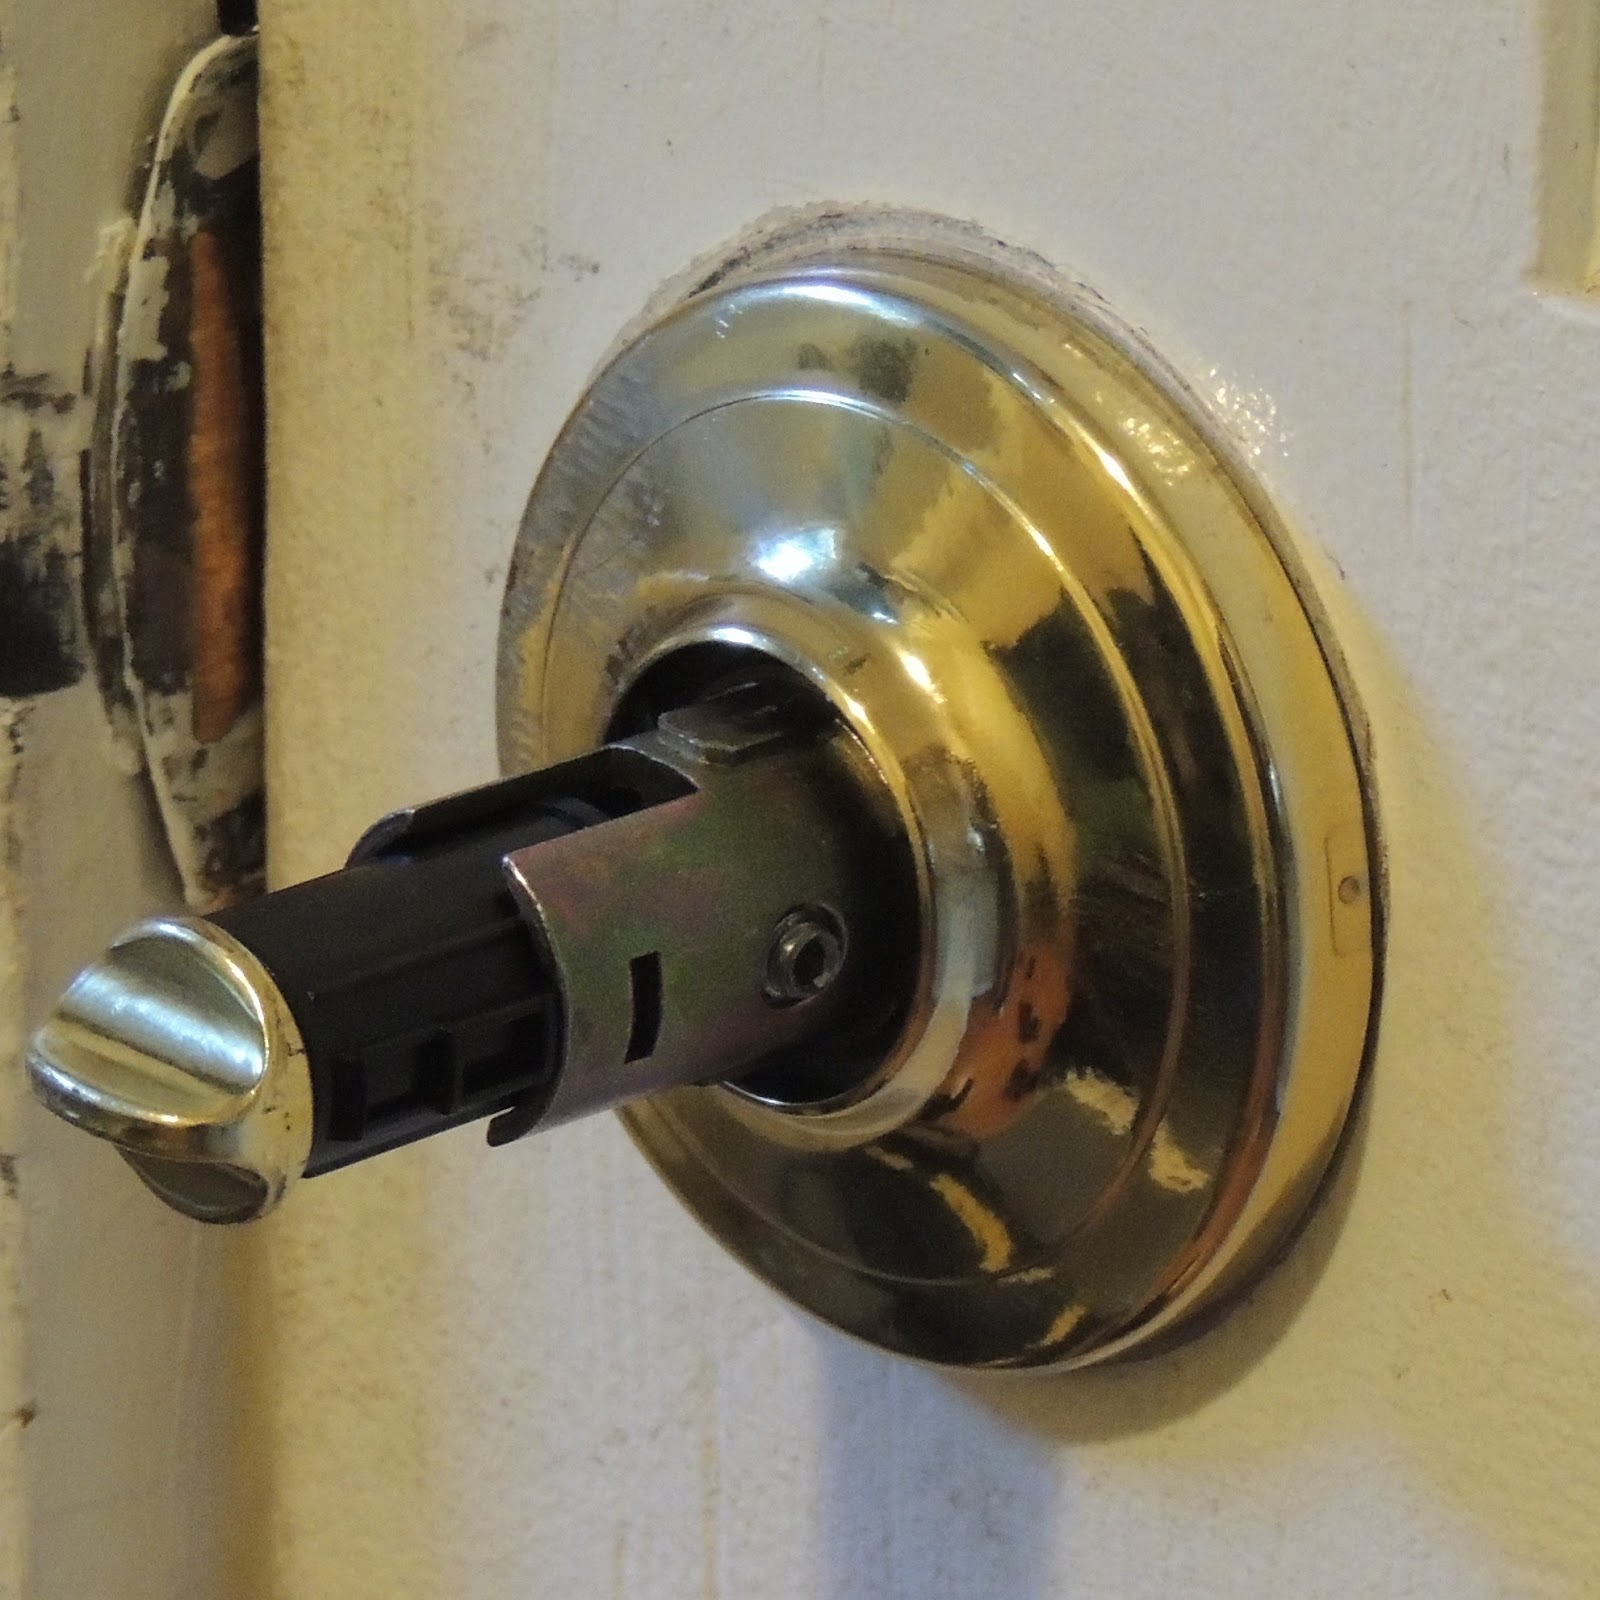 Interior Post Of Lock Showing Head Set That Is Ed Out To Hold Handle